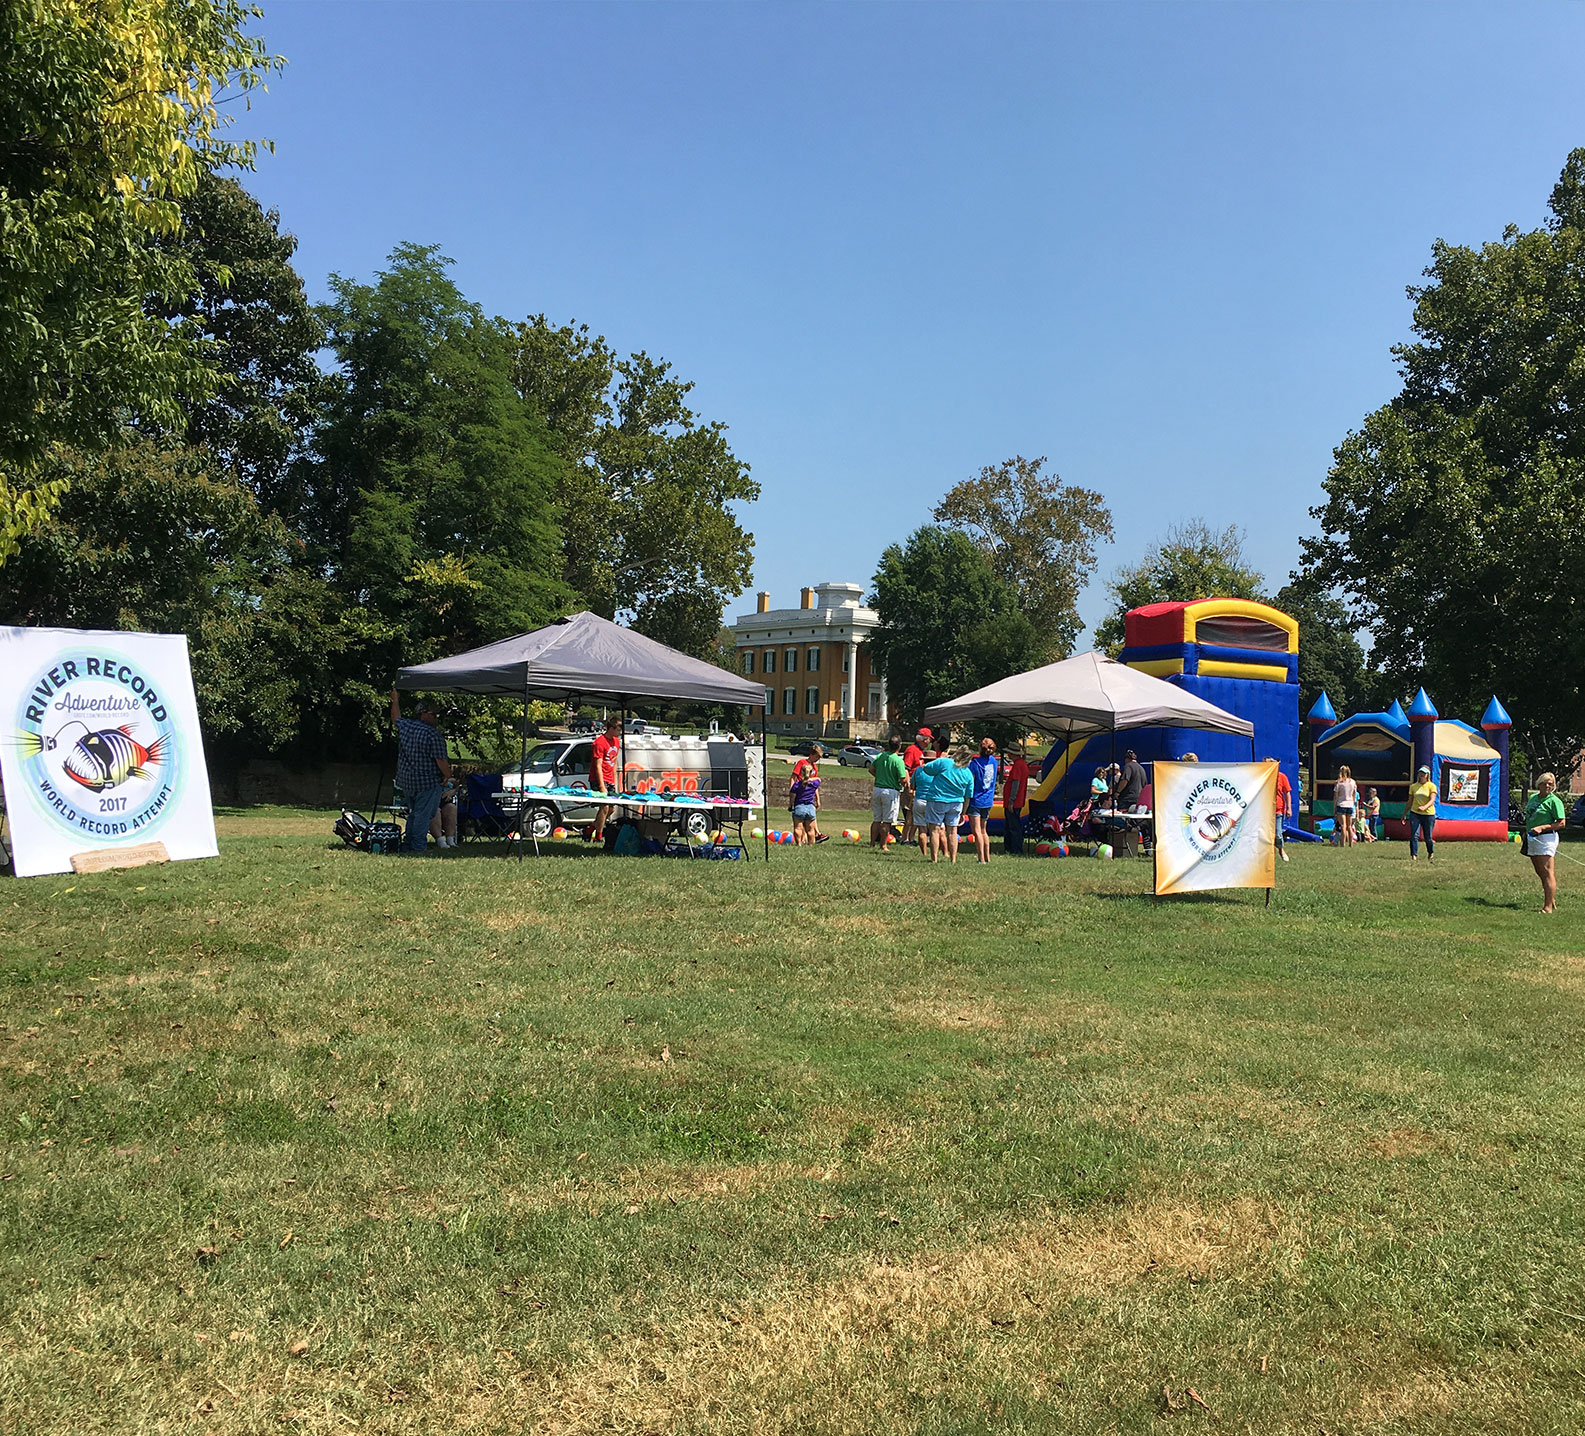 The River Record Adventure party that took place in Madison, Indiana